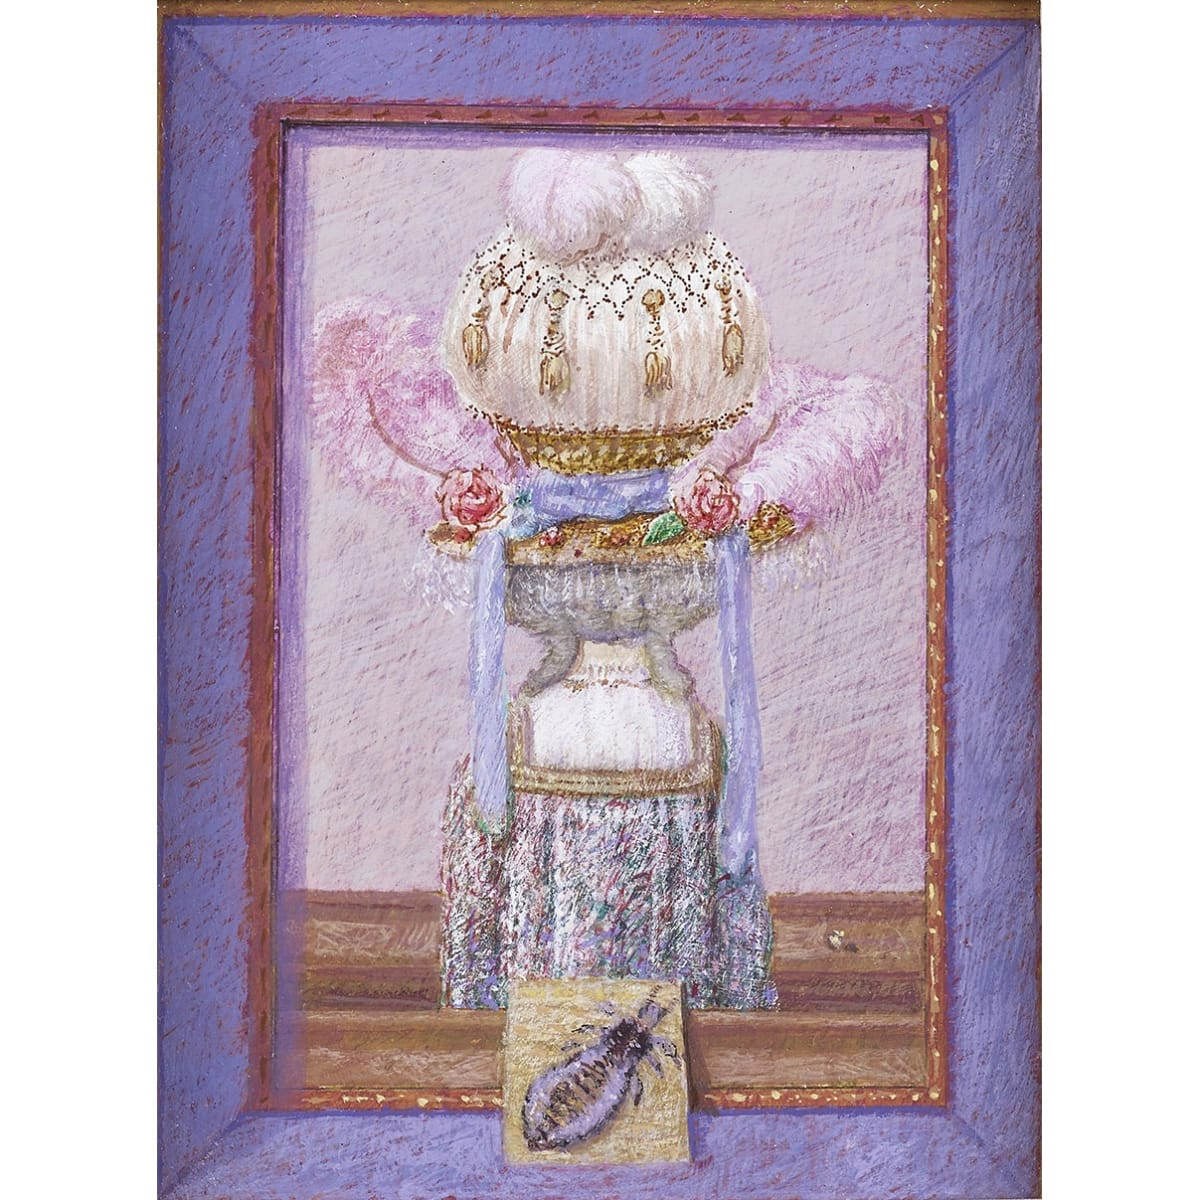 John Halliday Trompe l'oeil with Fabergé egg inscribed 'TO A. LOUISE' on panel verso tempera 8 x 6 inches